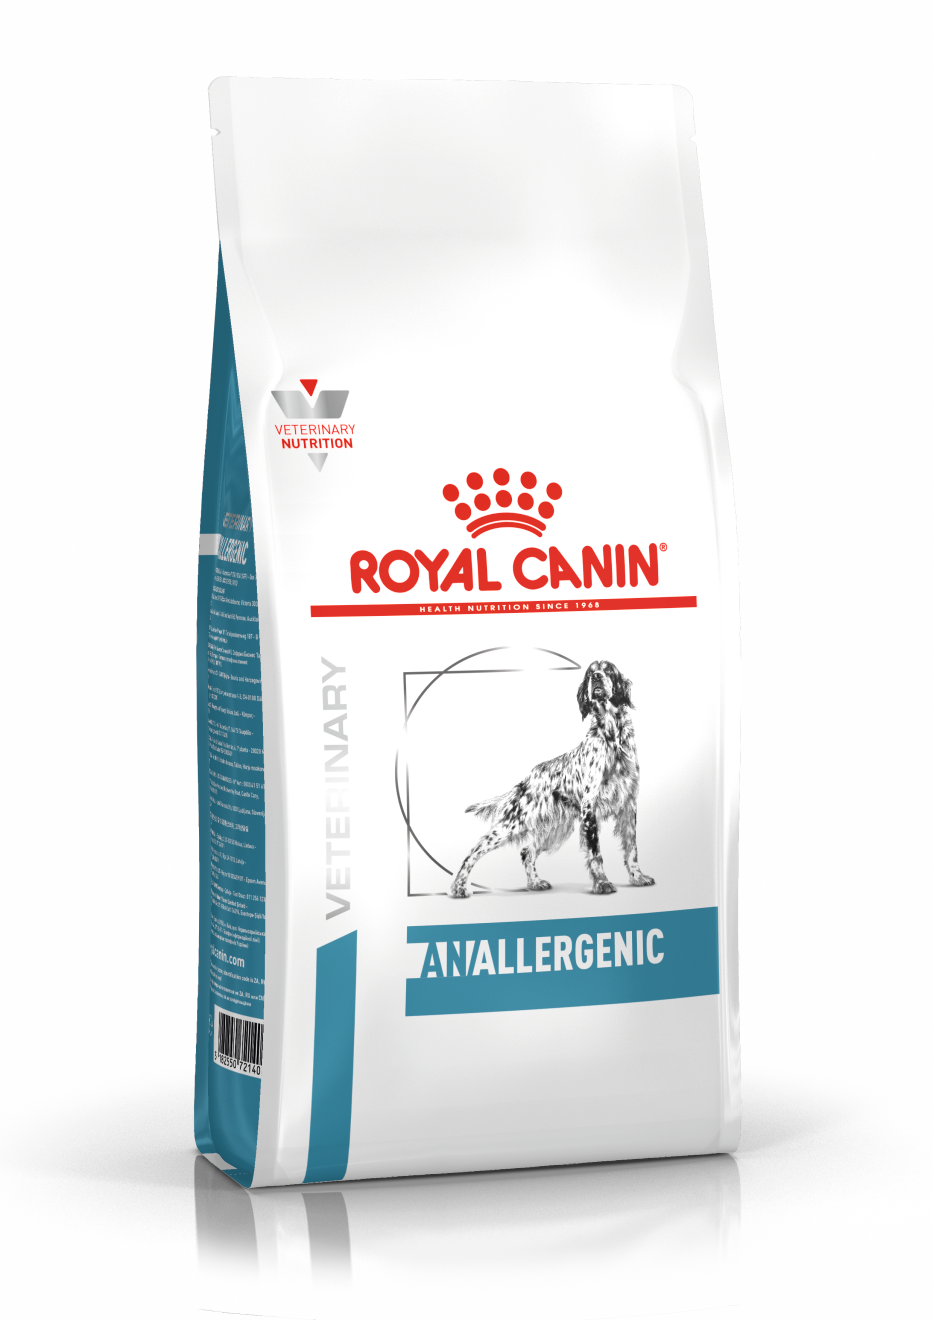 Royal Canin Anallergenic 3 kg (Hund)